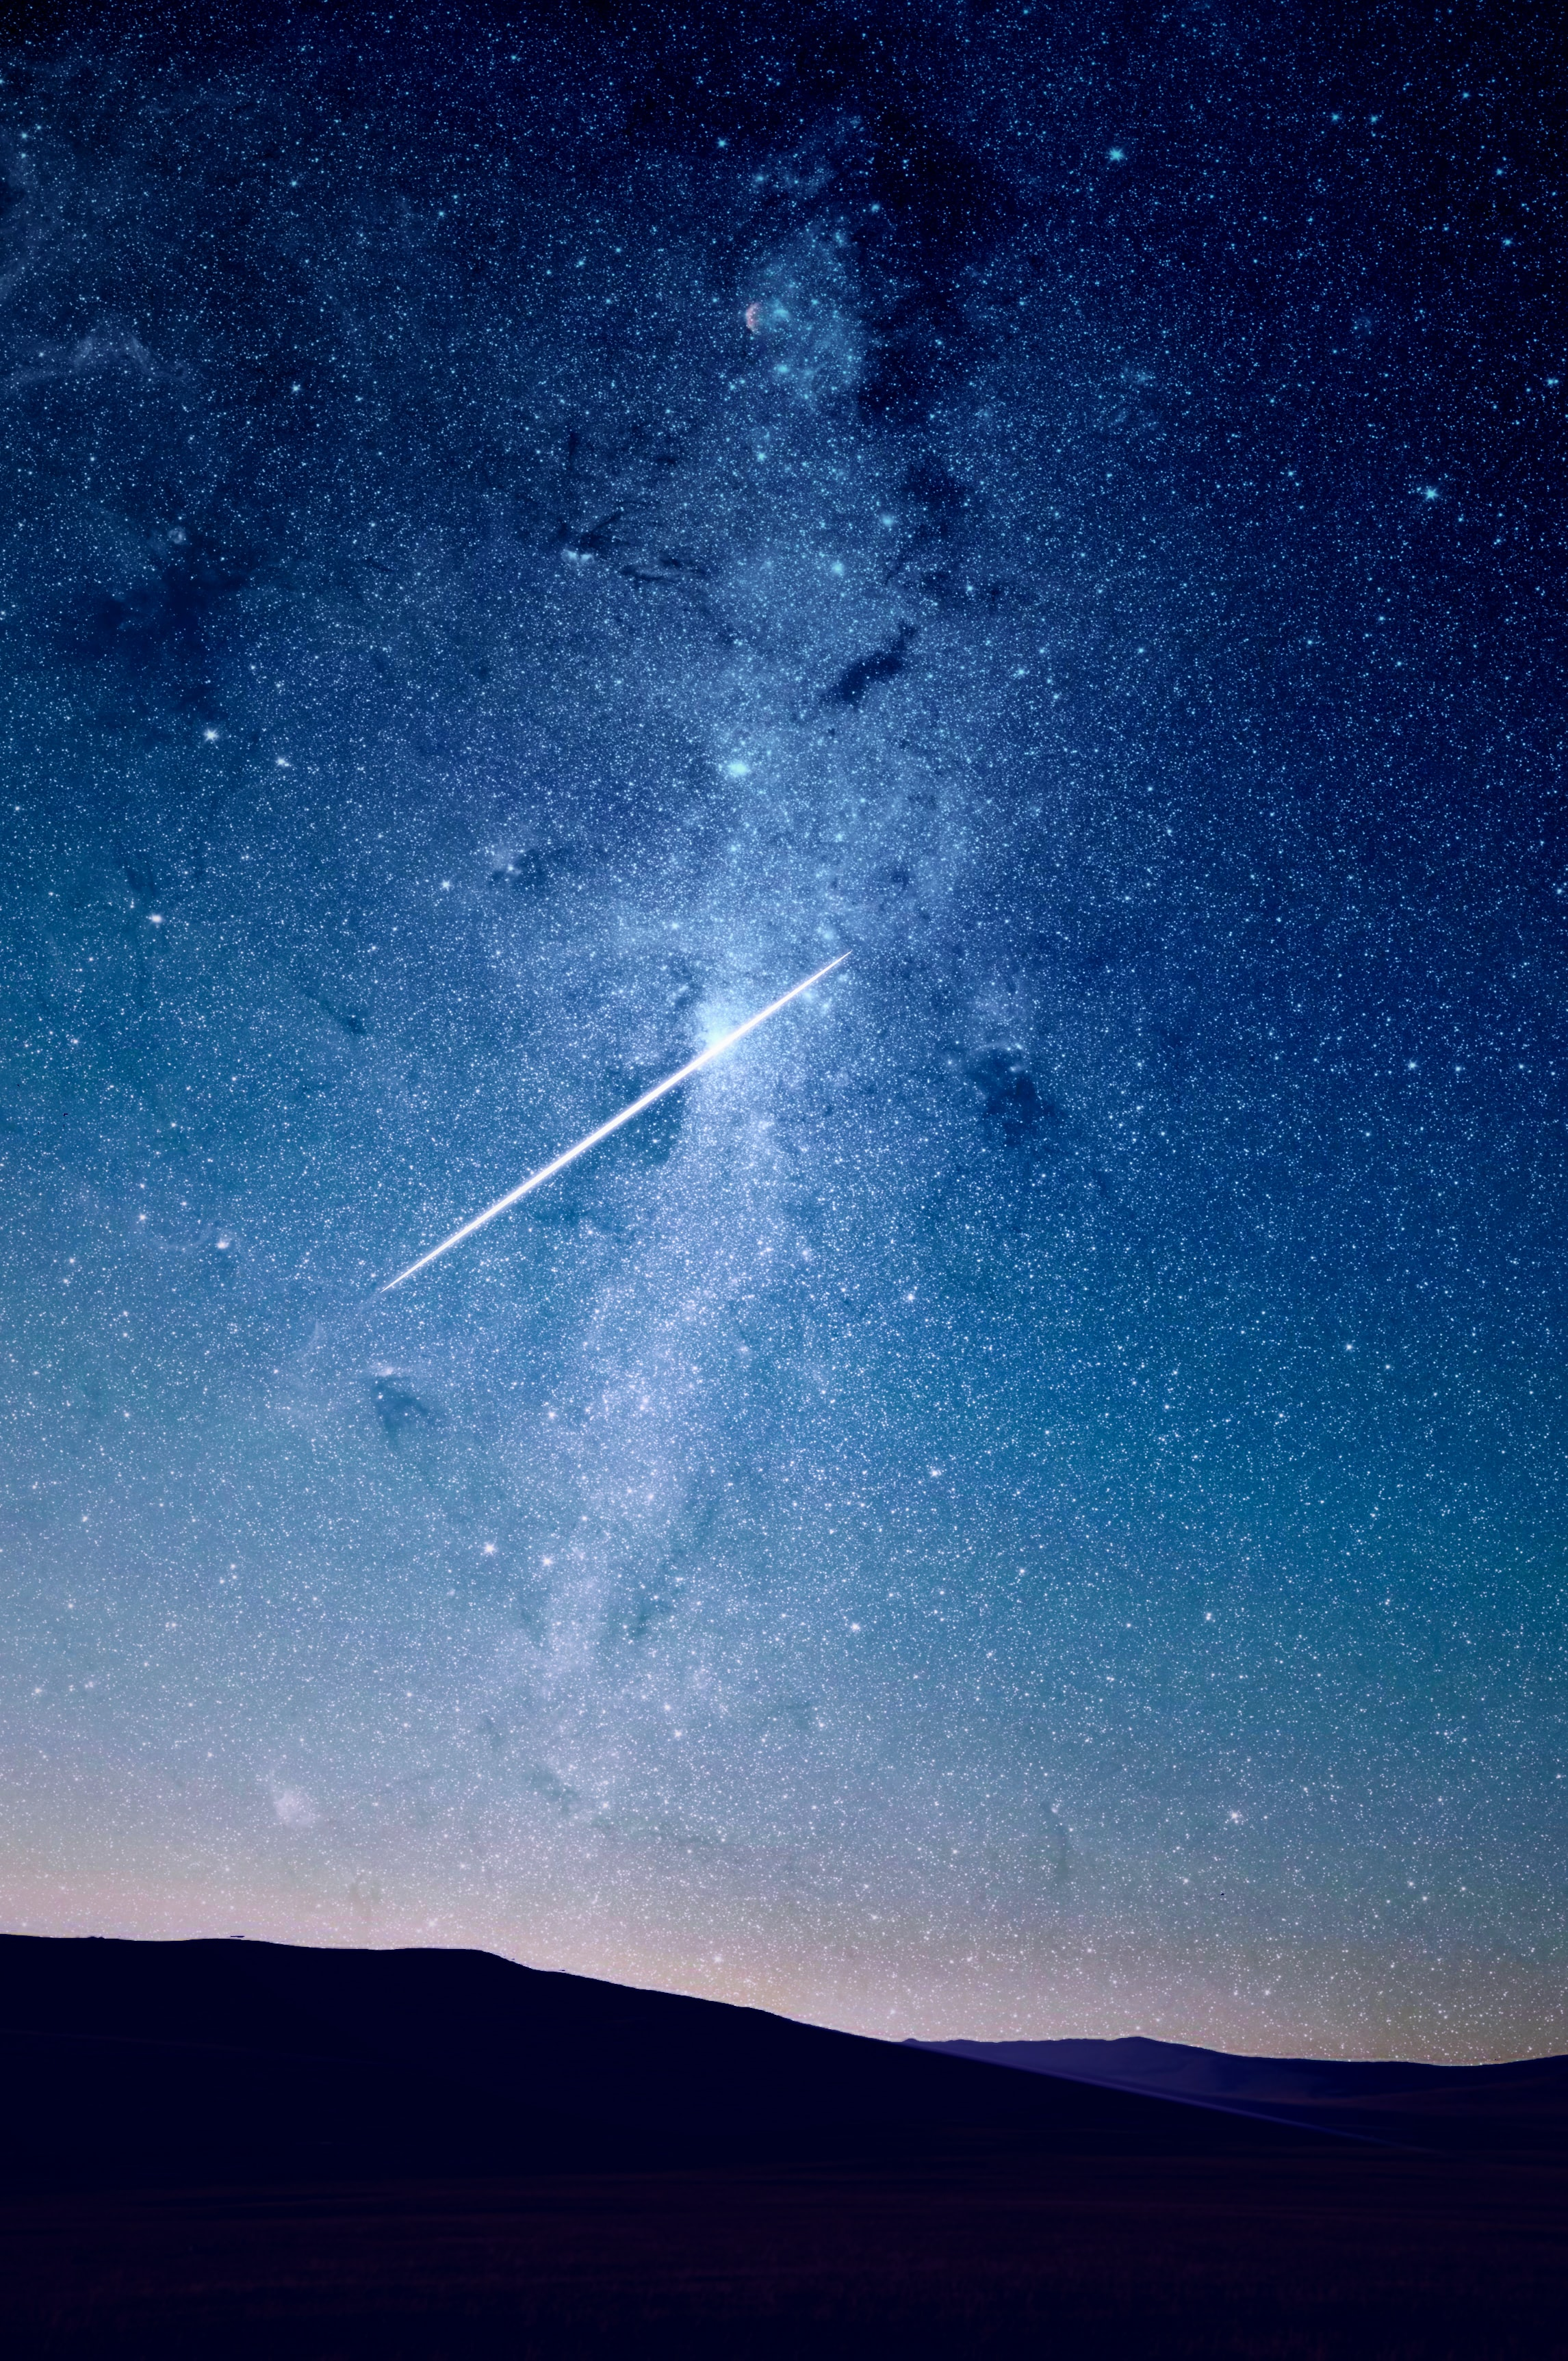 Aerial view of the stars and a shooting star in the sky at night.